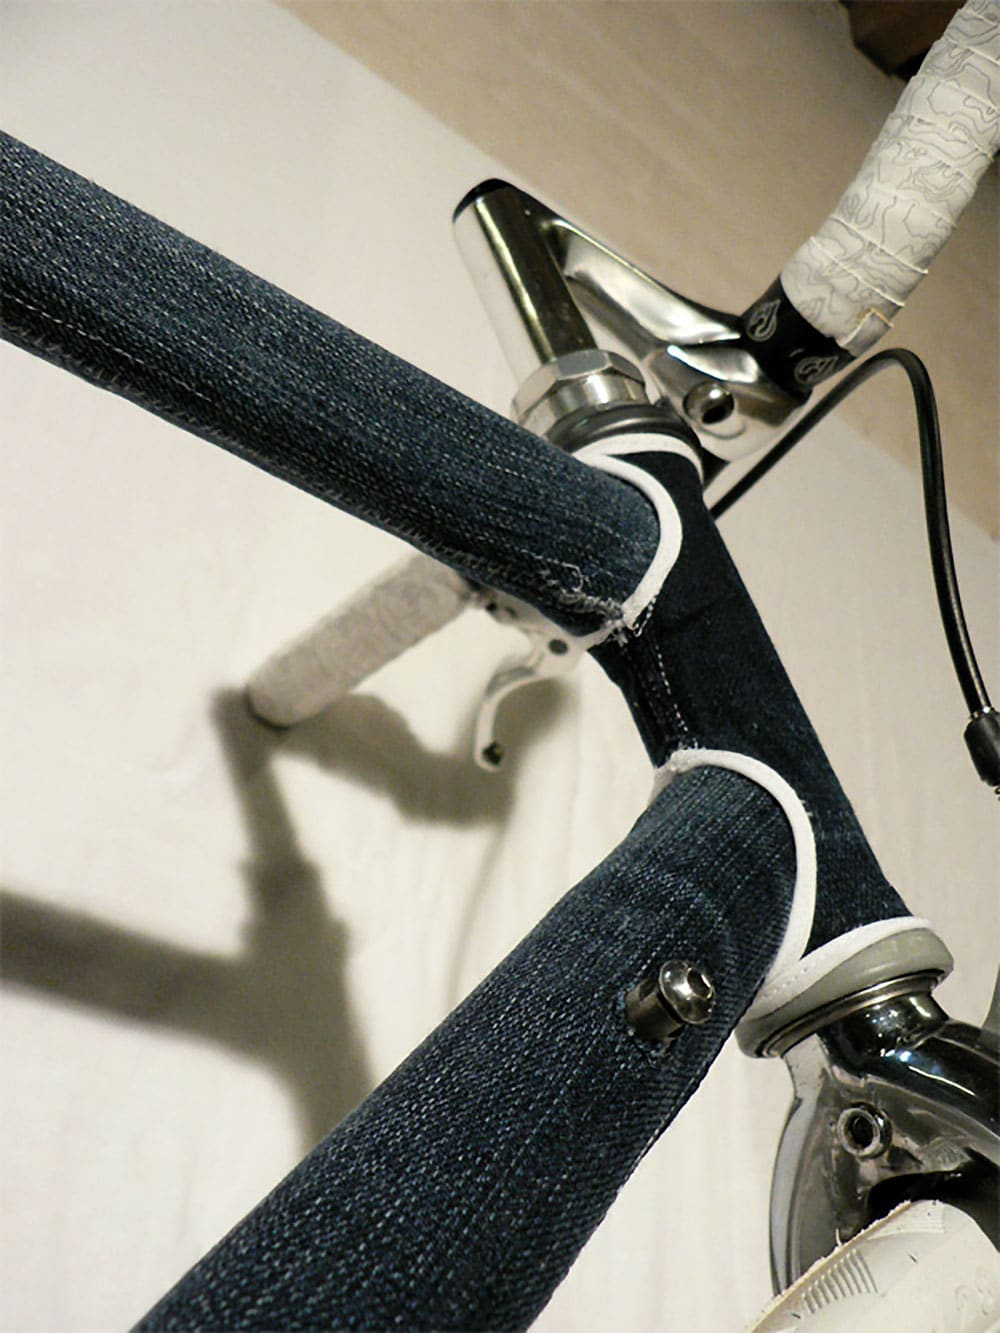 The first Denim Fixie by C.O.P Design